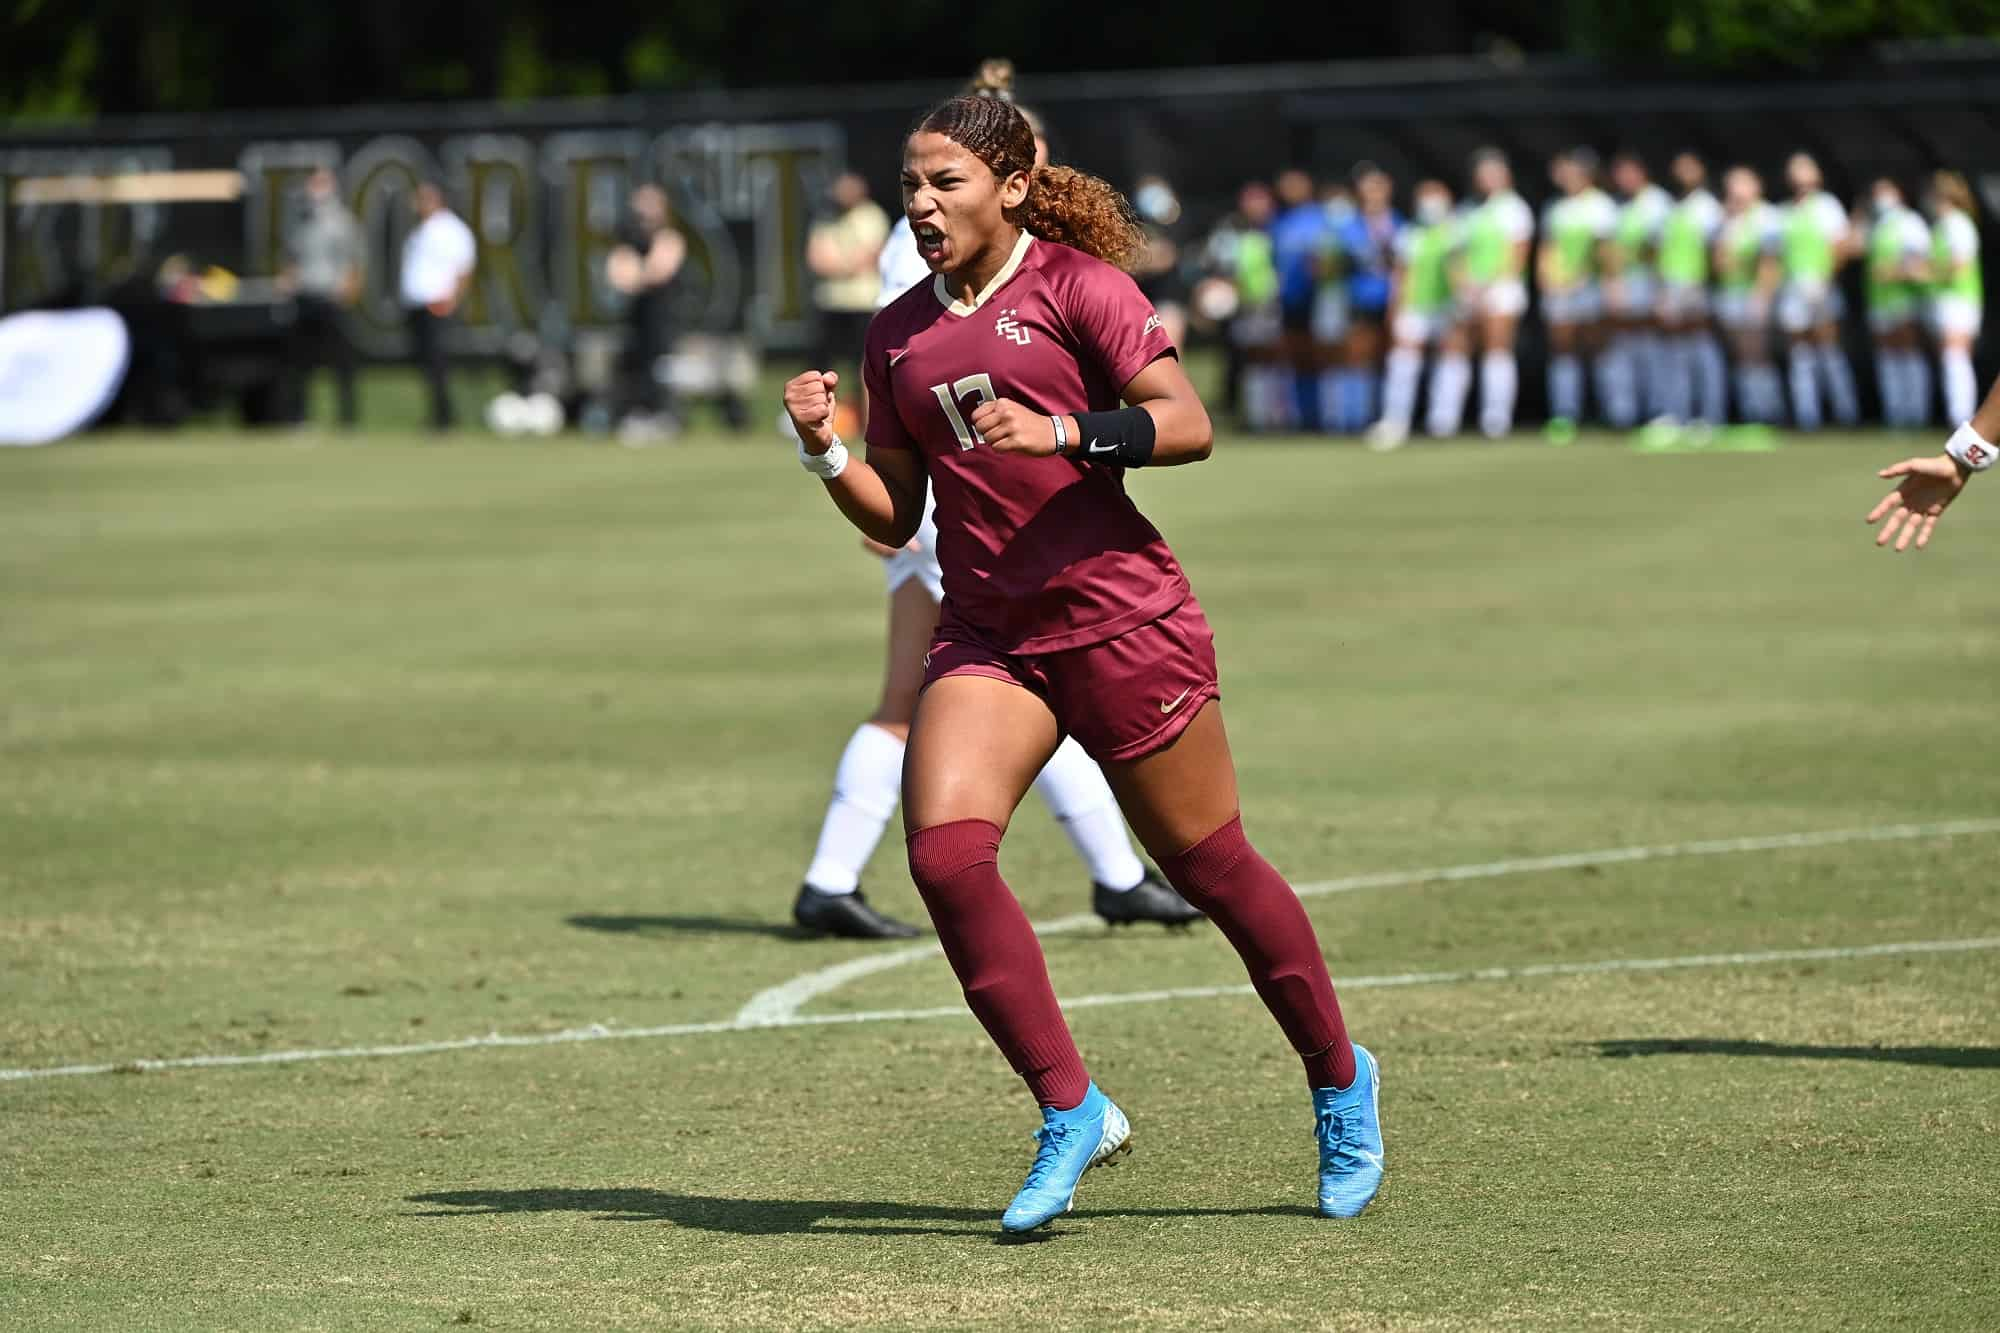 Noles Remain Undefeated On The Road